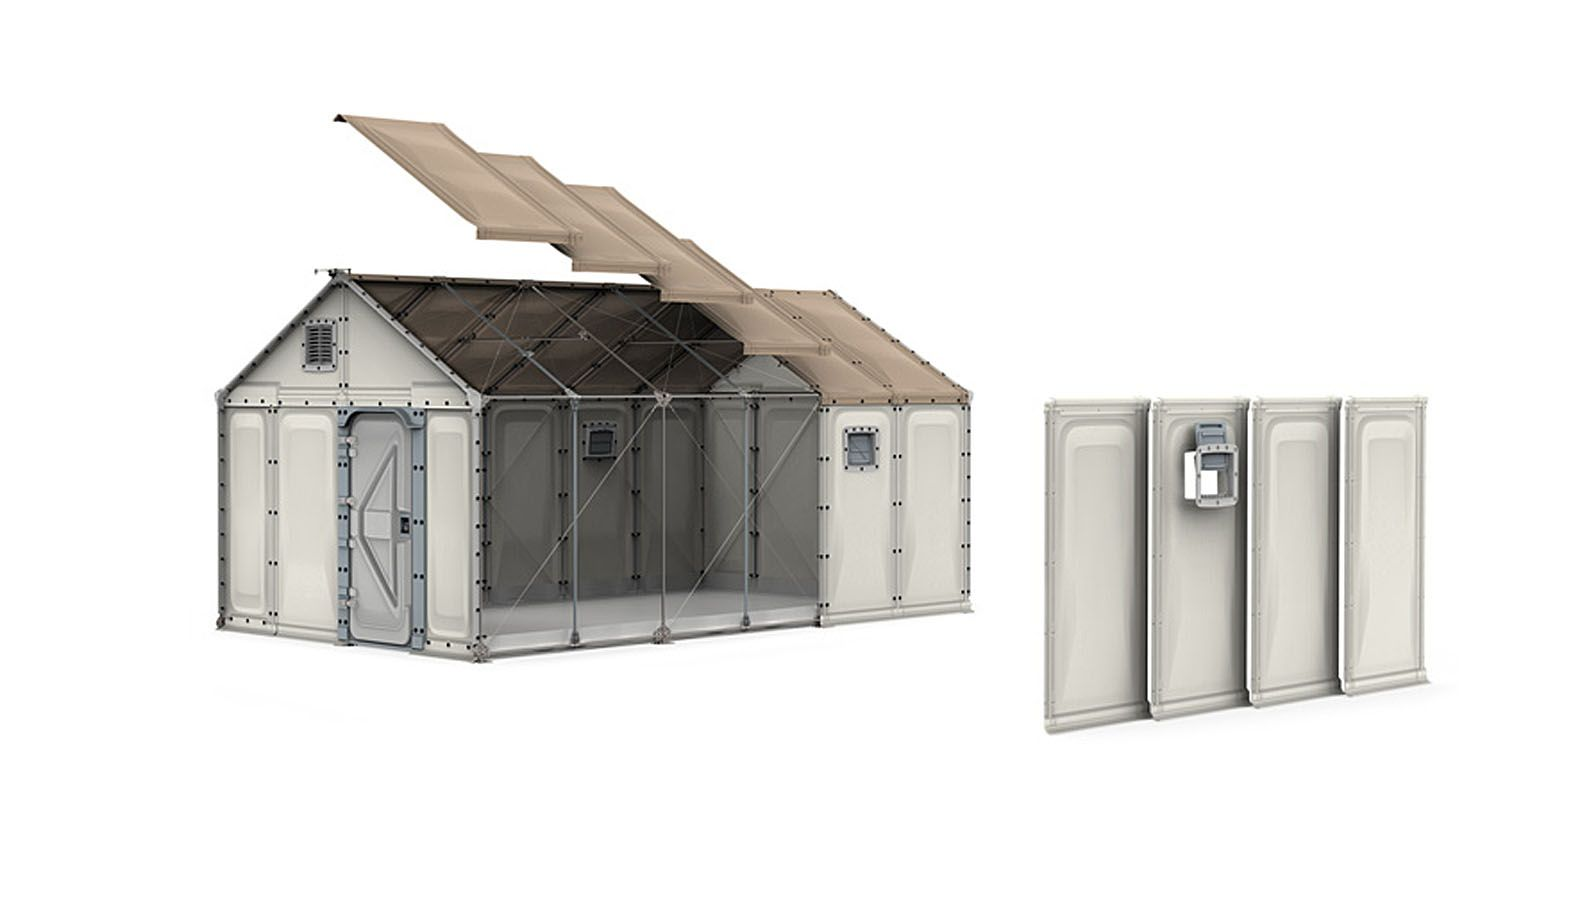 Ikea 39 S Modular Better Shelter Housing Unit Is A Solar